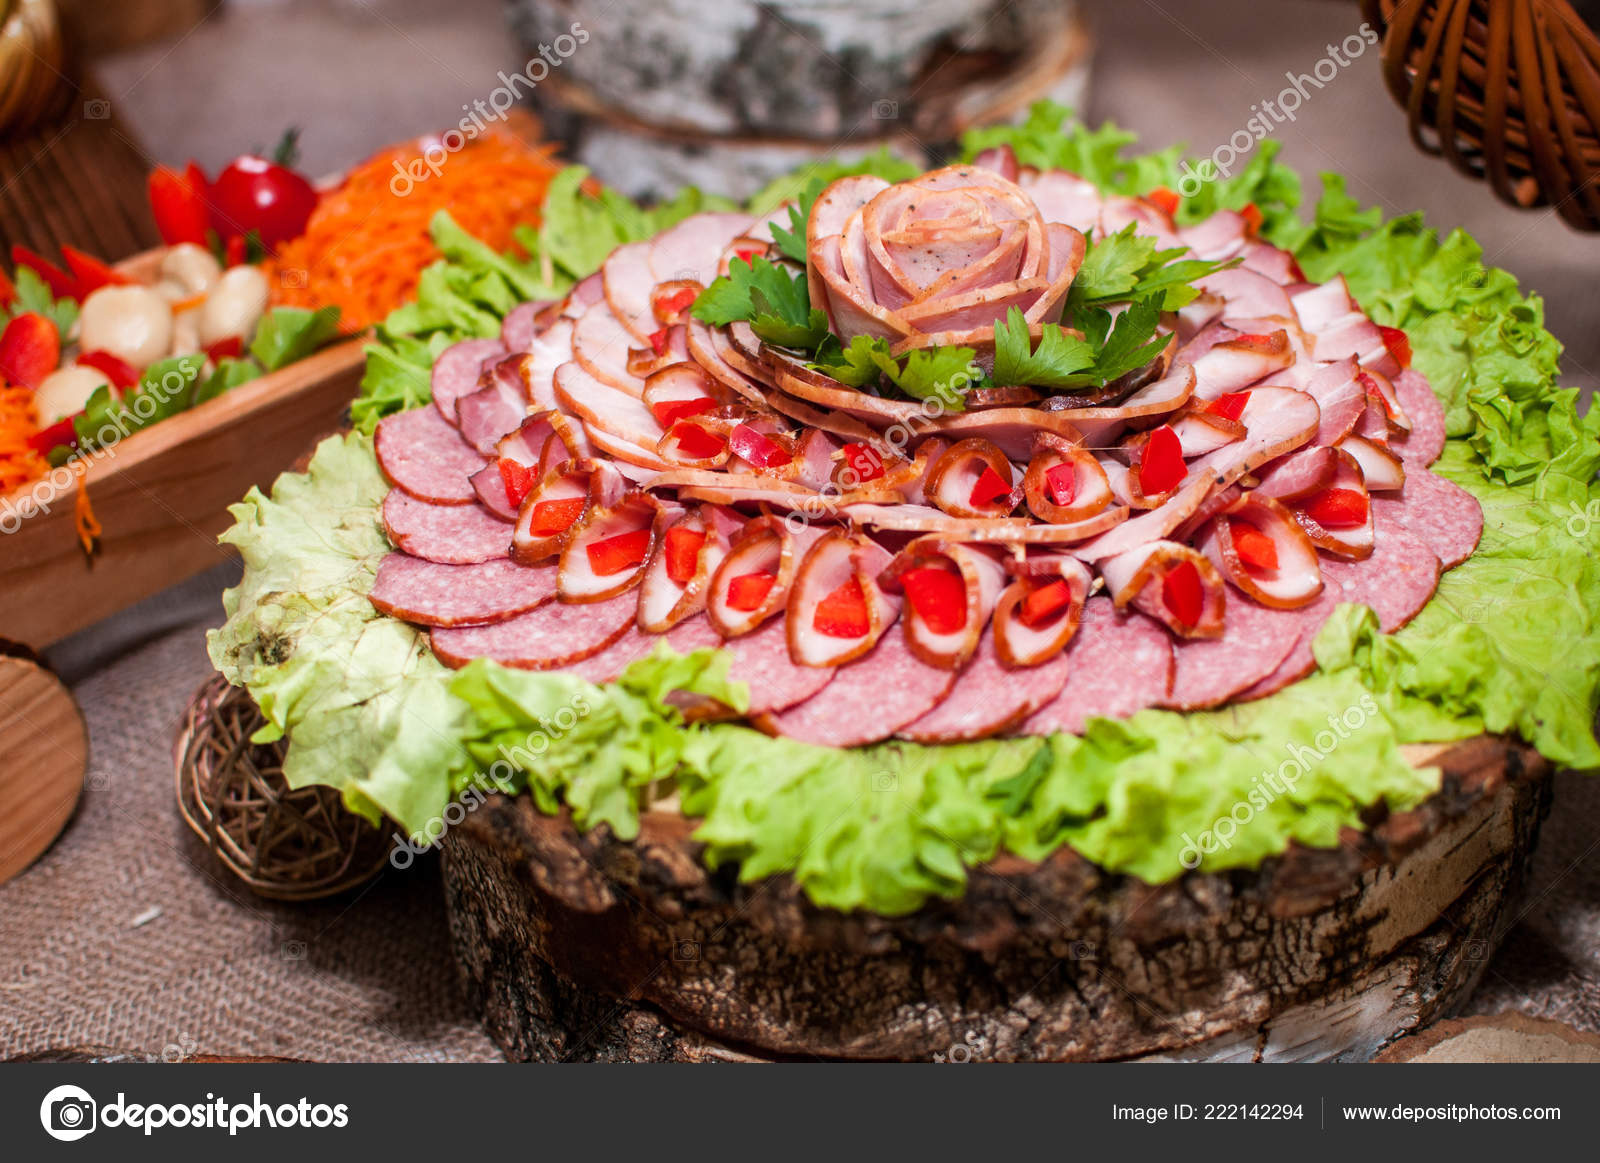 Sausages Salad Decoration Wooden Table Stock Photo C Galka3250